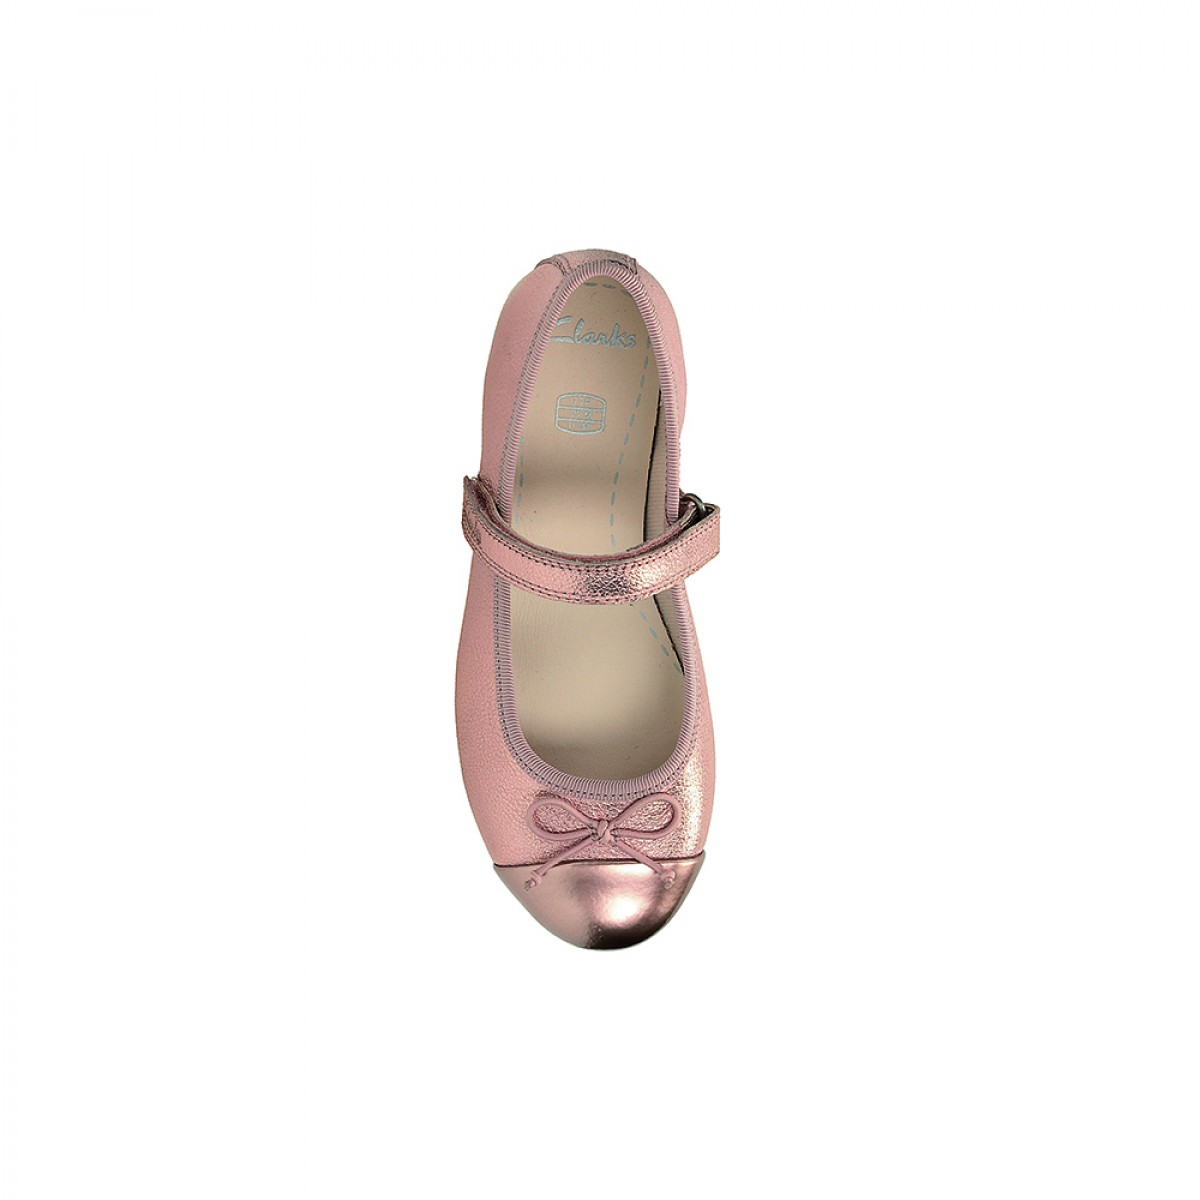 Clarks Rose Gold Shoes